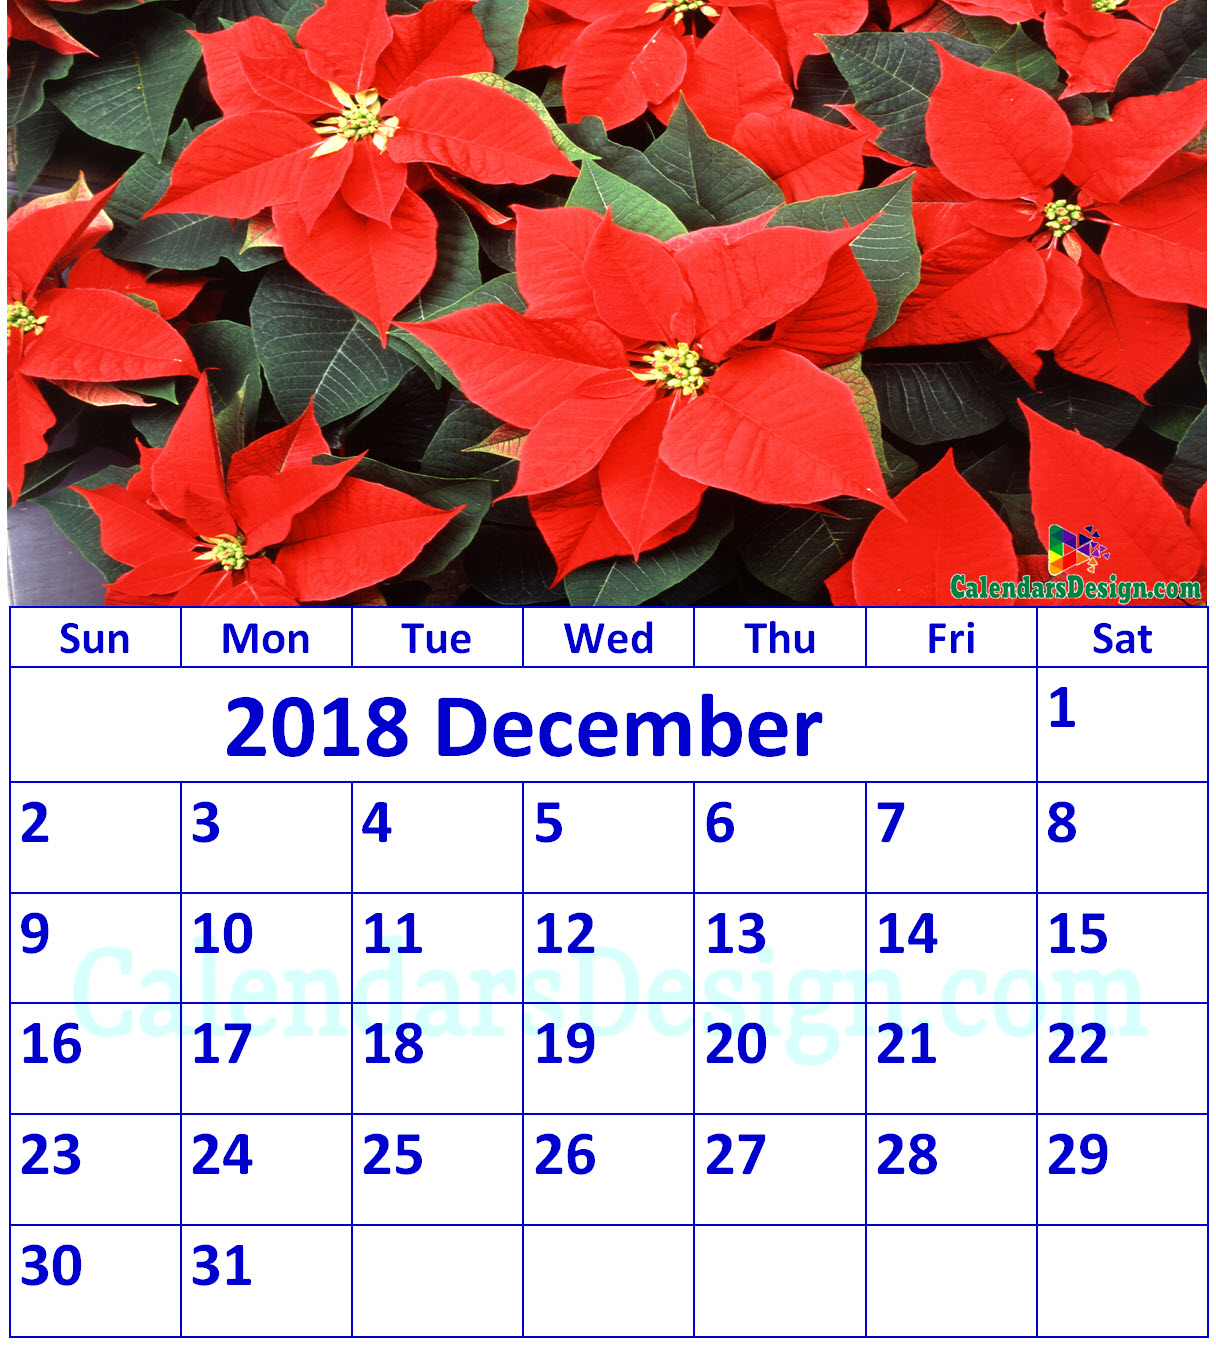 image about December Calendar Printable With Holidays referred to as Floral December 2018 Calendar Printable - Cost-free 2019